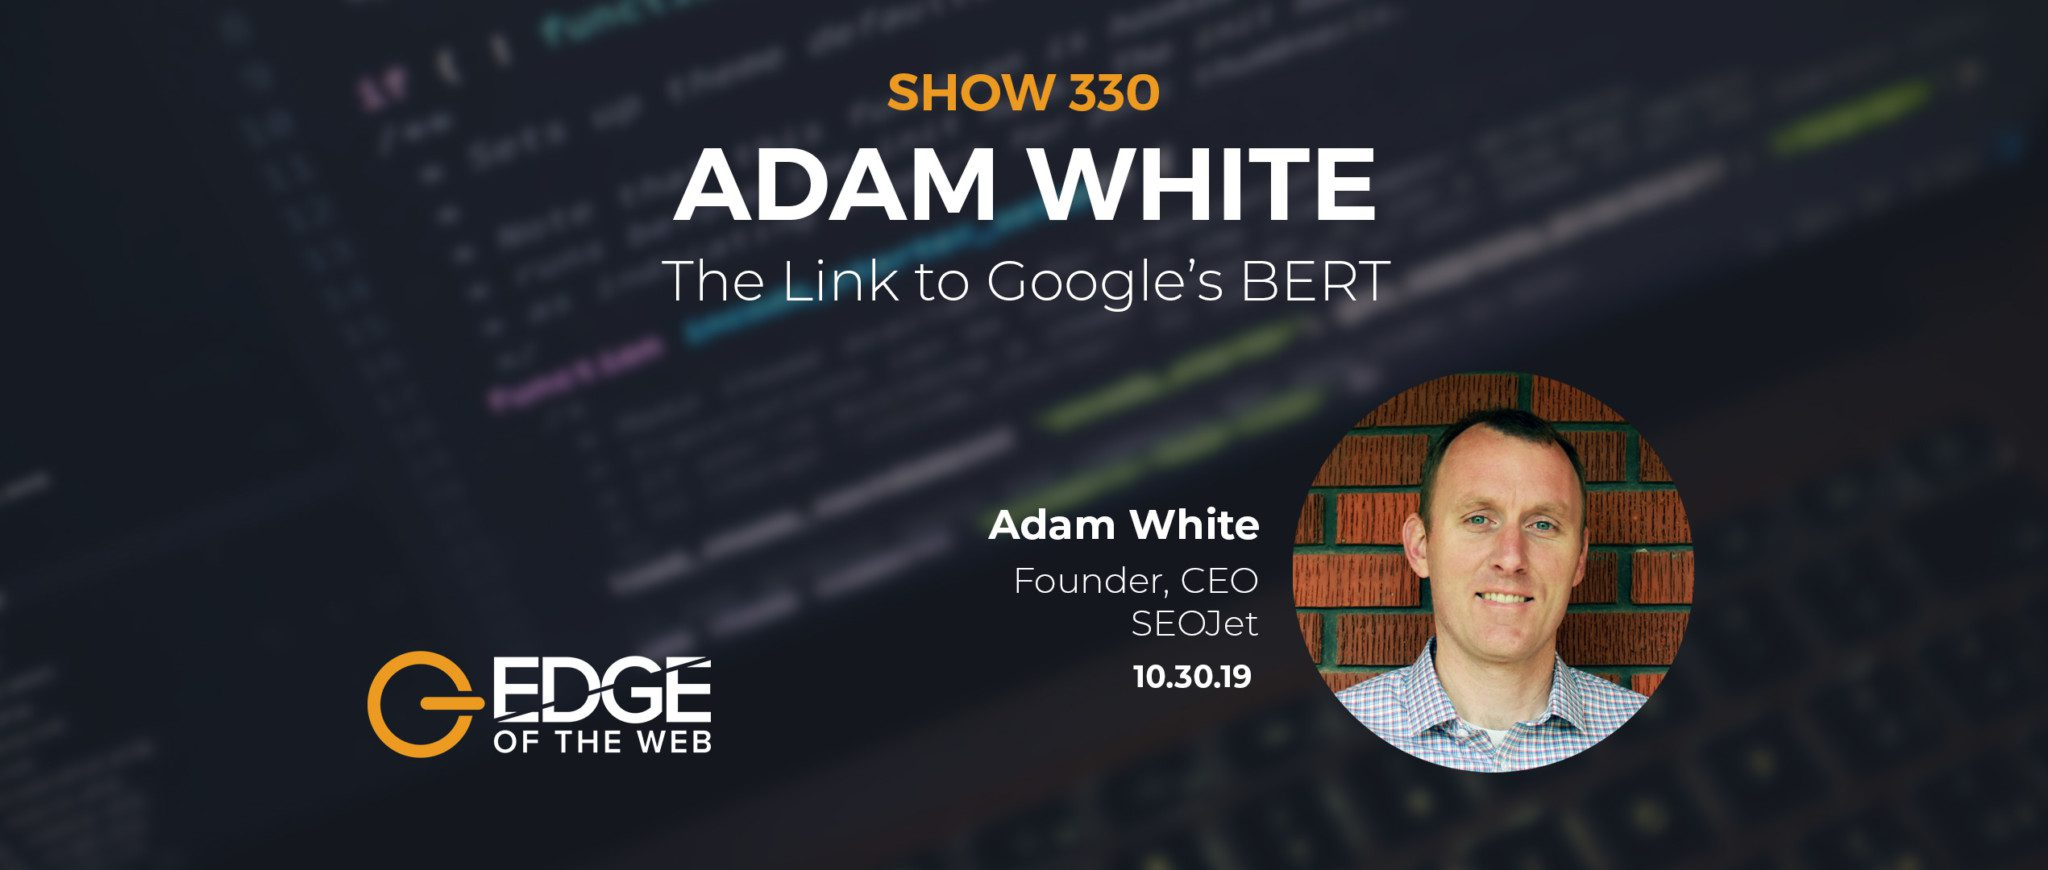 Show 330: The Link to Google's BERT, featuring Adam White